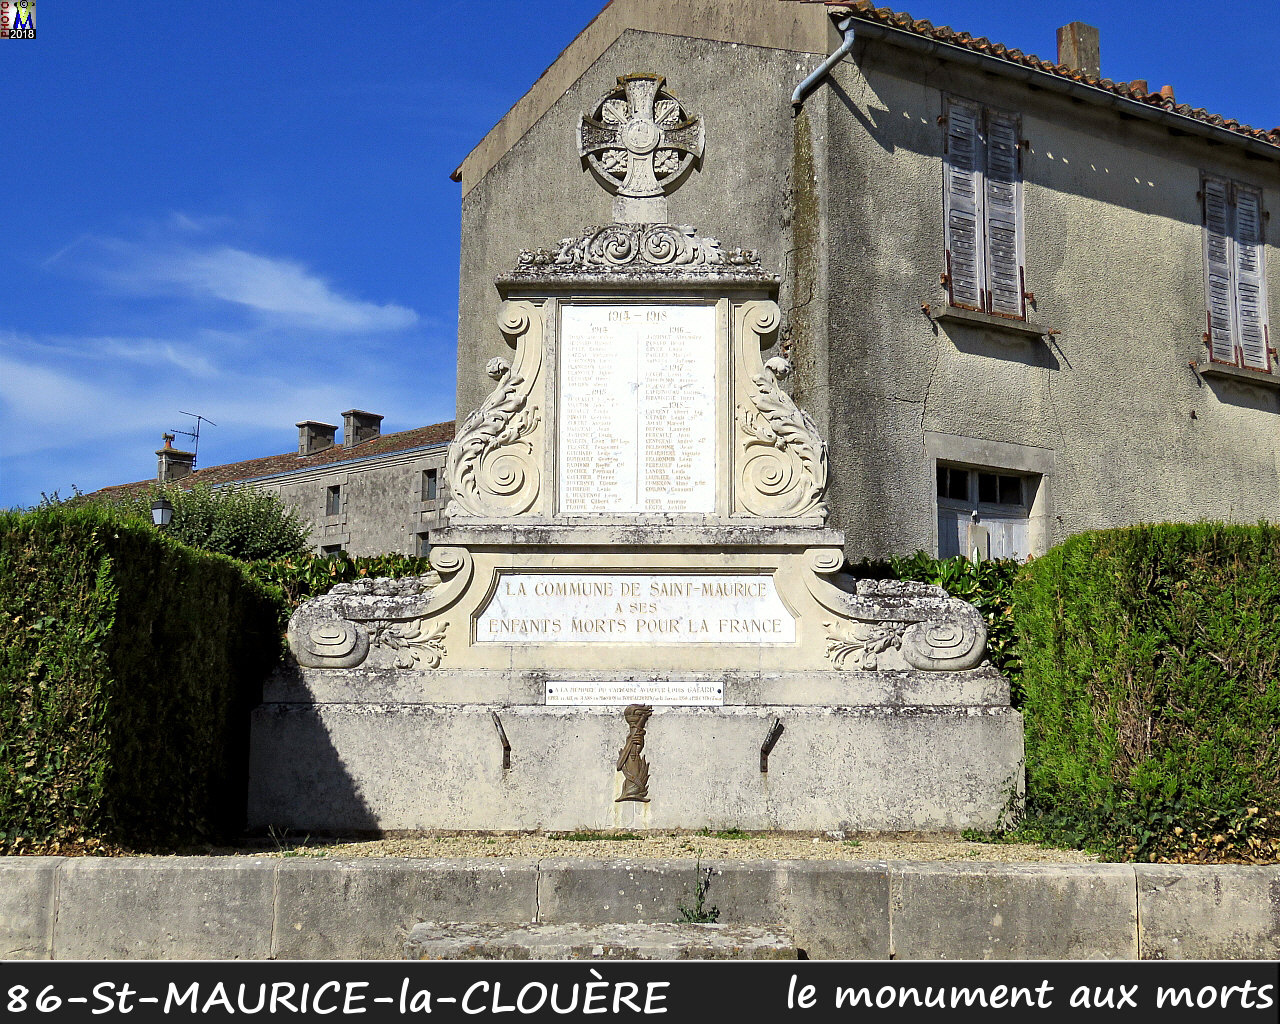 86StMAURICE-CLOUERE_morts_1010.jpg